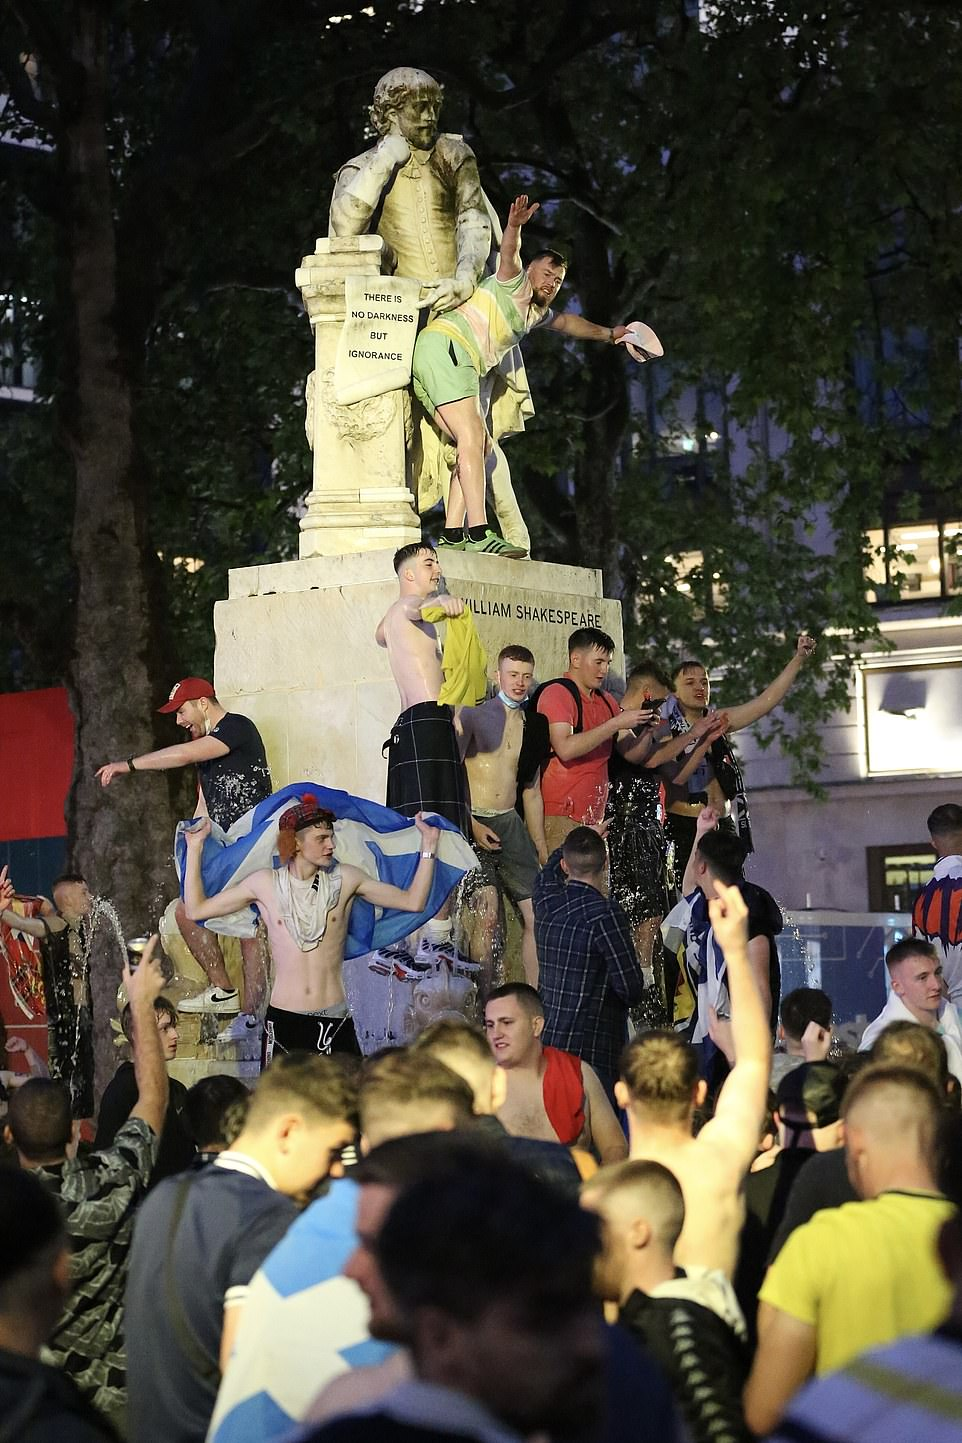 Scotland football fans climb the Shakespeare fountain in Leicester Square last night in London ahead of the Uefa clash